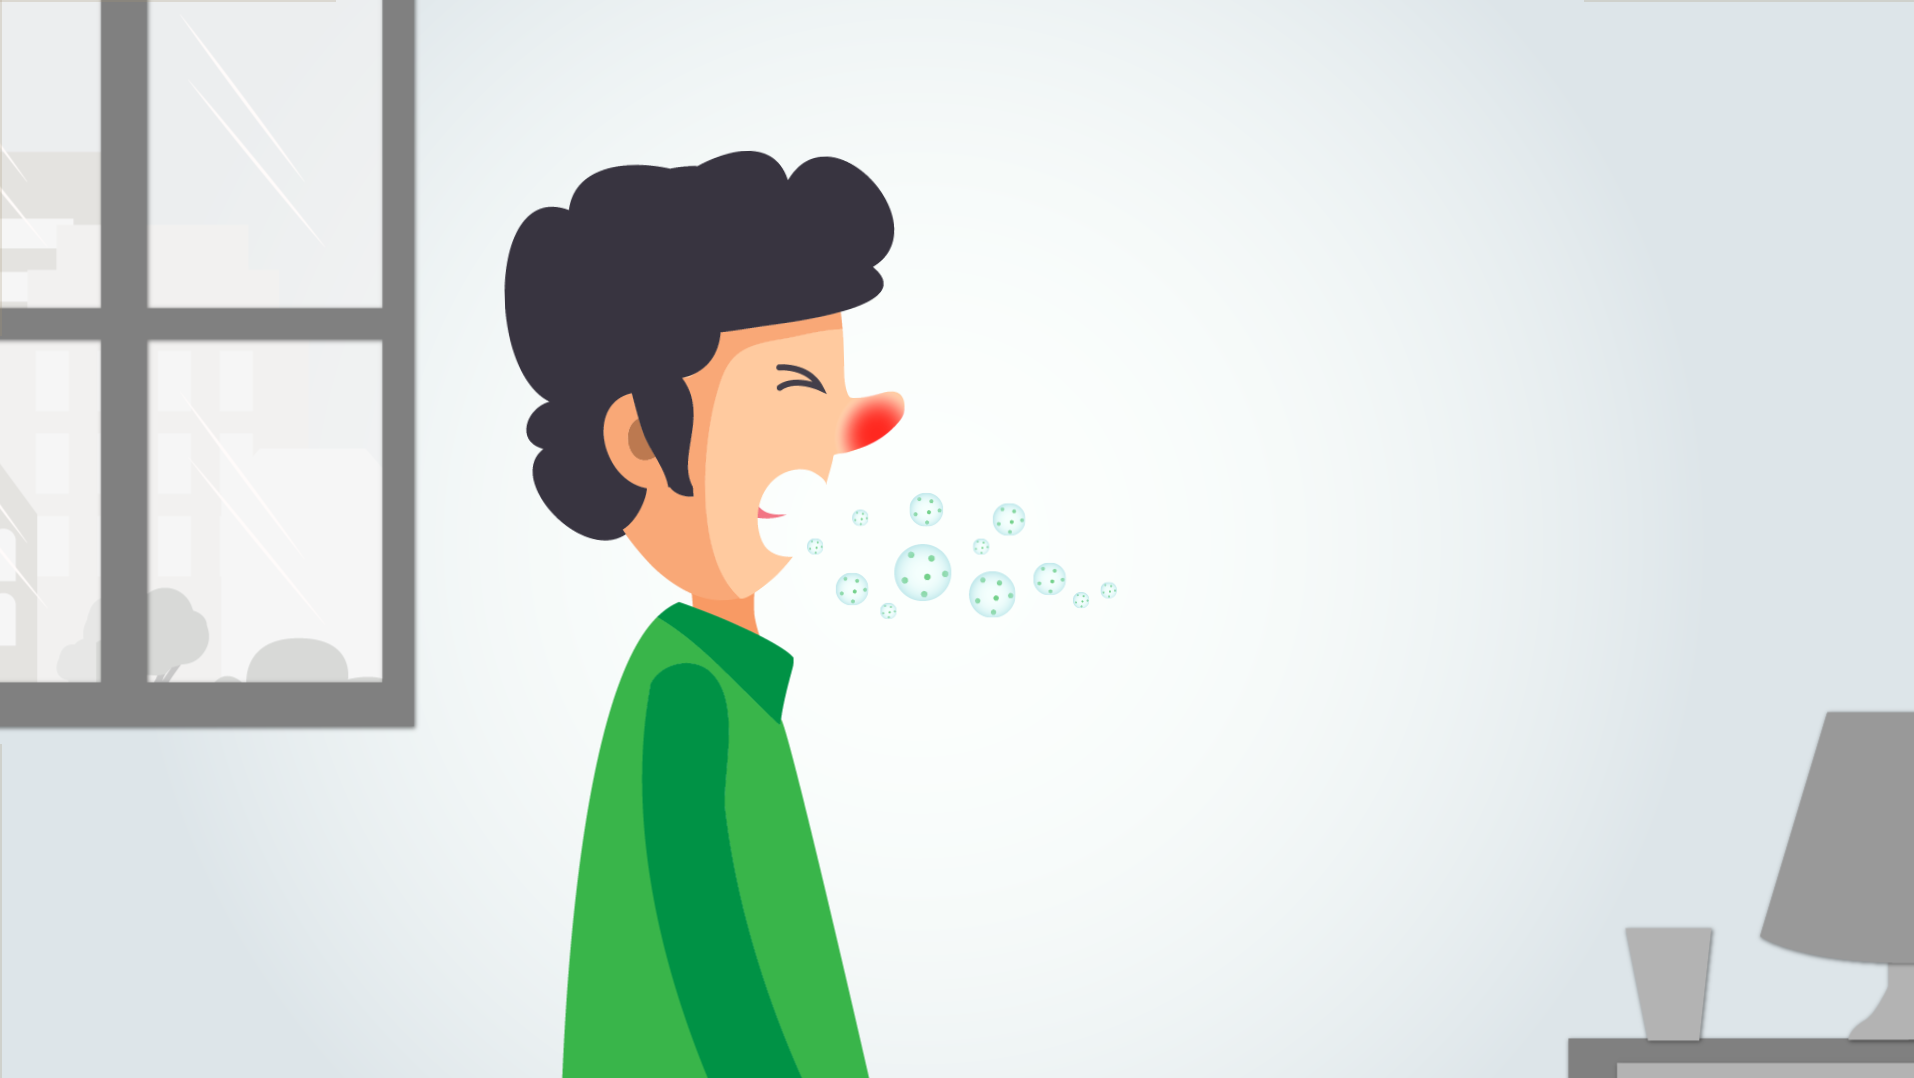 Influenza spreads when an infected person coughs or sneezes.